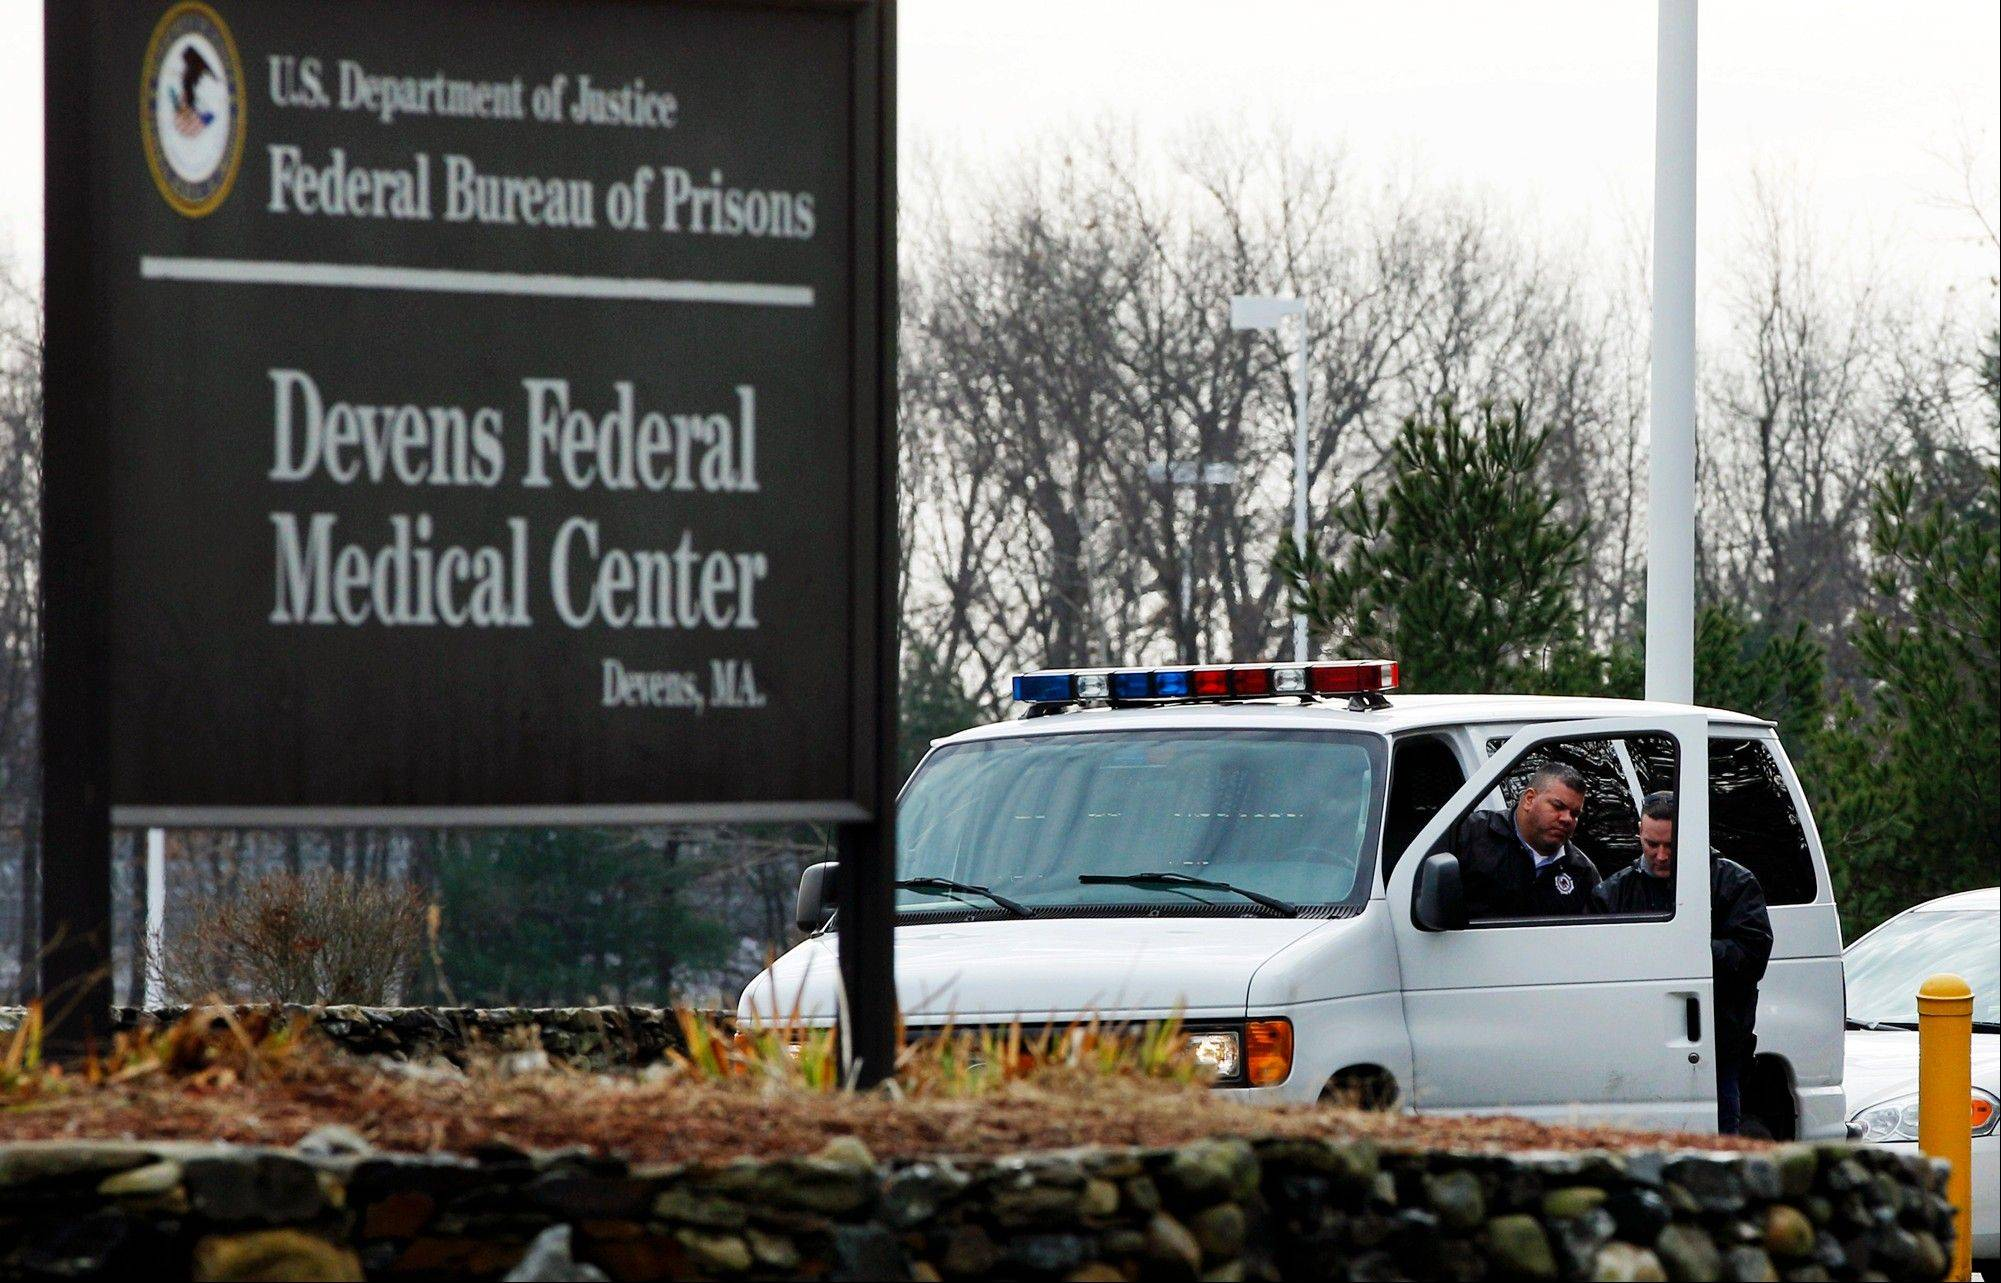 The Devens Federal Medical Center in Devens, Mass. The U.S. Marshals Service said Friday, April 26, 2013, that Dzhokhar Tsarnaev, charged in the Boston Marathon bombing, had been moved from a Boston hospital to the federal medical center at Devens, about 40 miles west of the city.